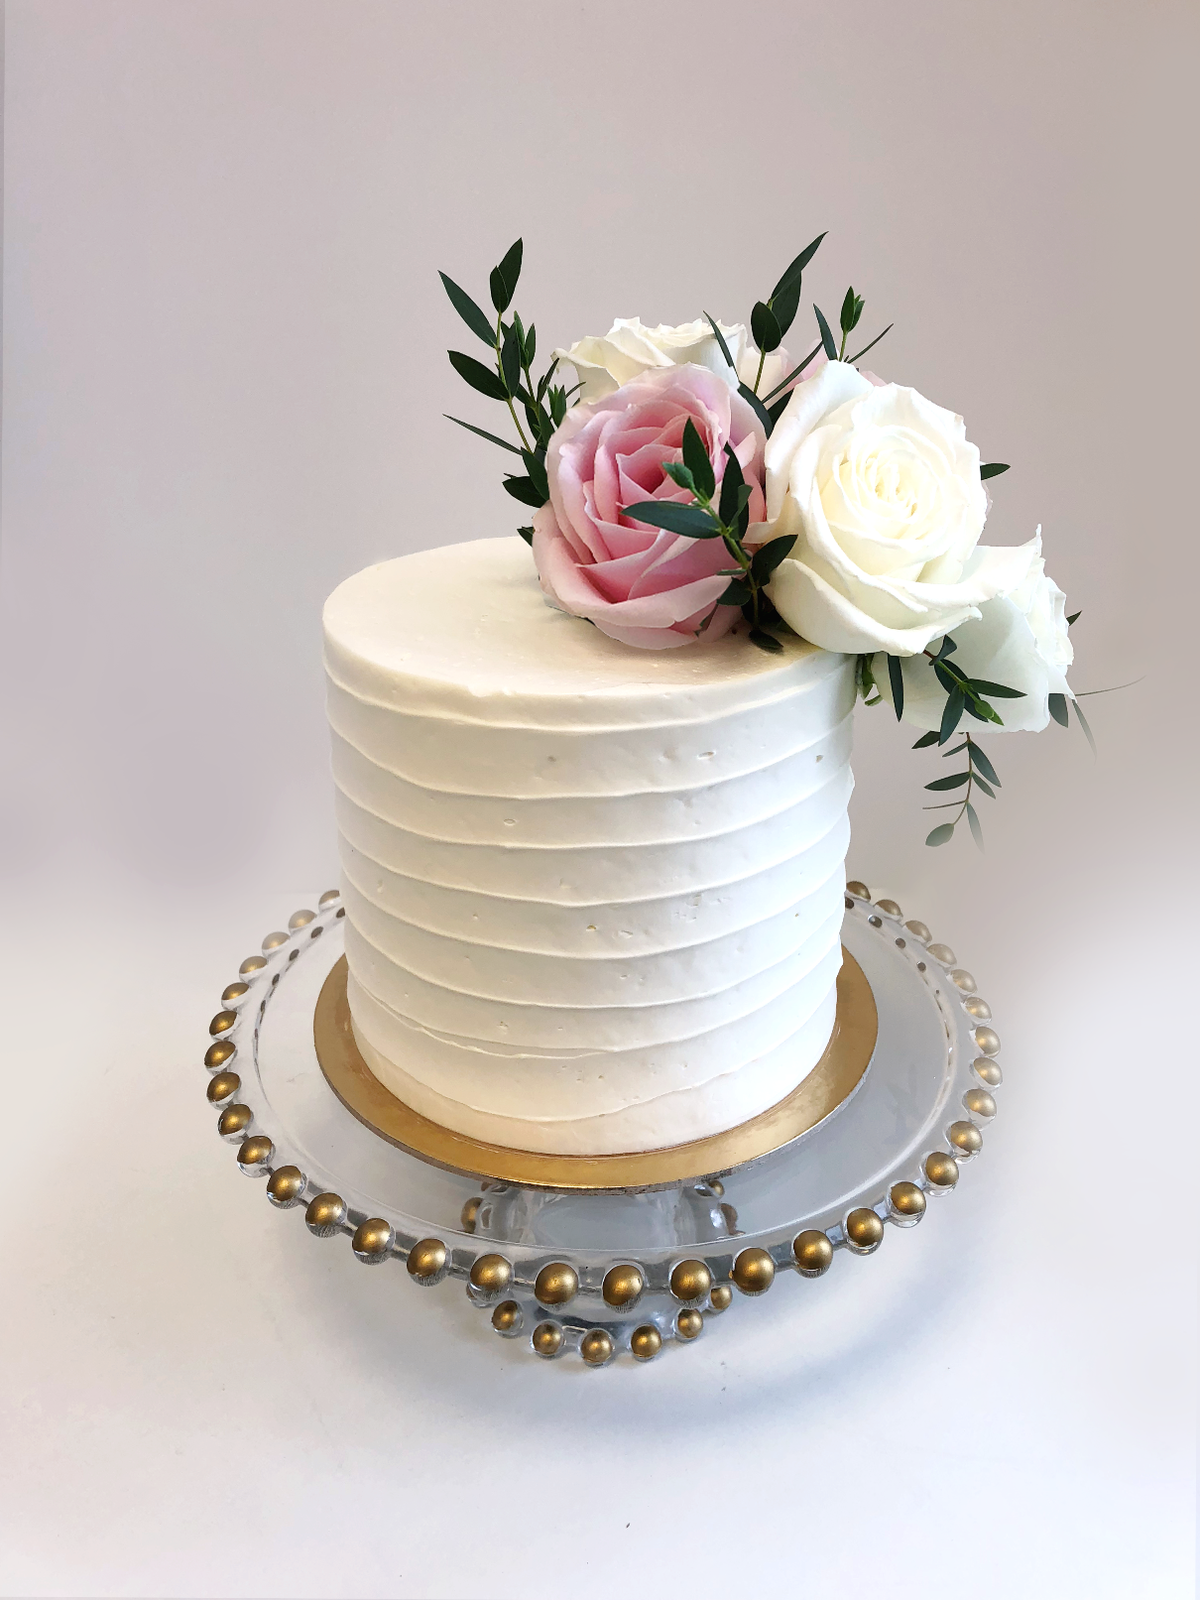 Whippt Desserts - Cutting Cake buttercreamridges Oct 2018